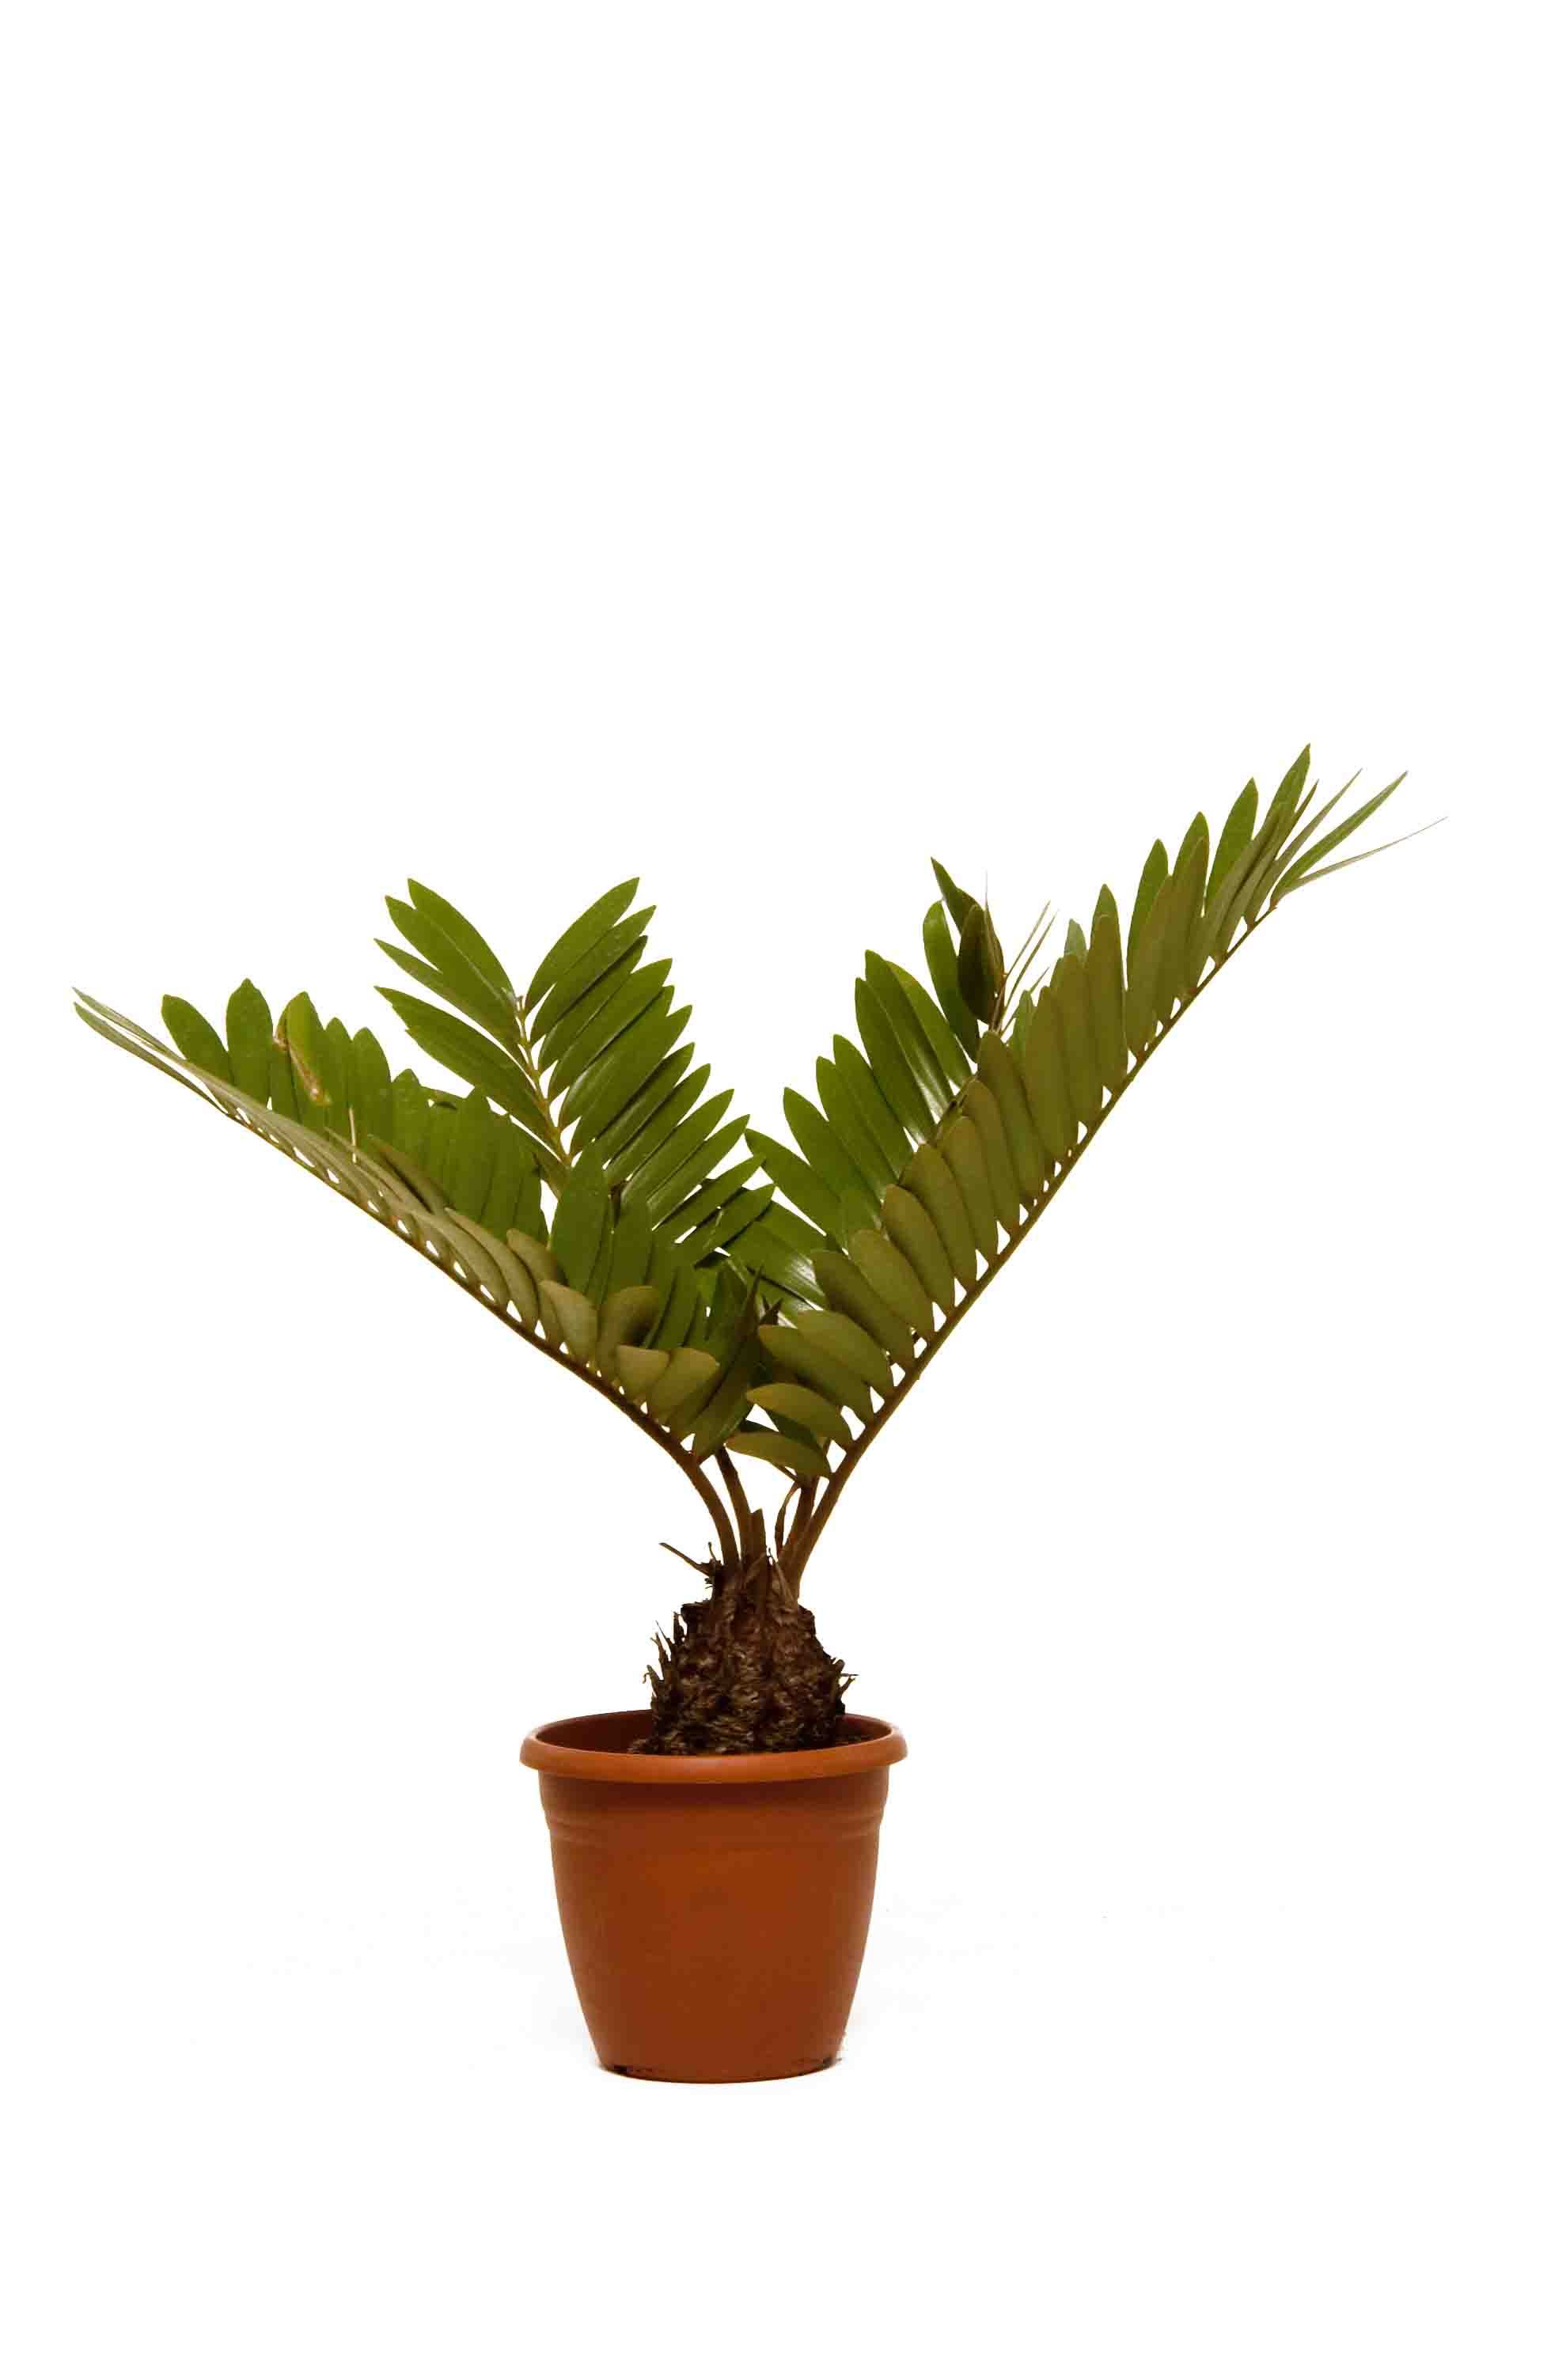 Cycas Revoluta Great Plant Where There Is Good Light And Enough Room In The Office